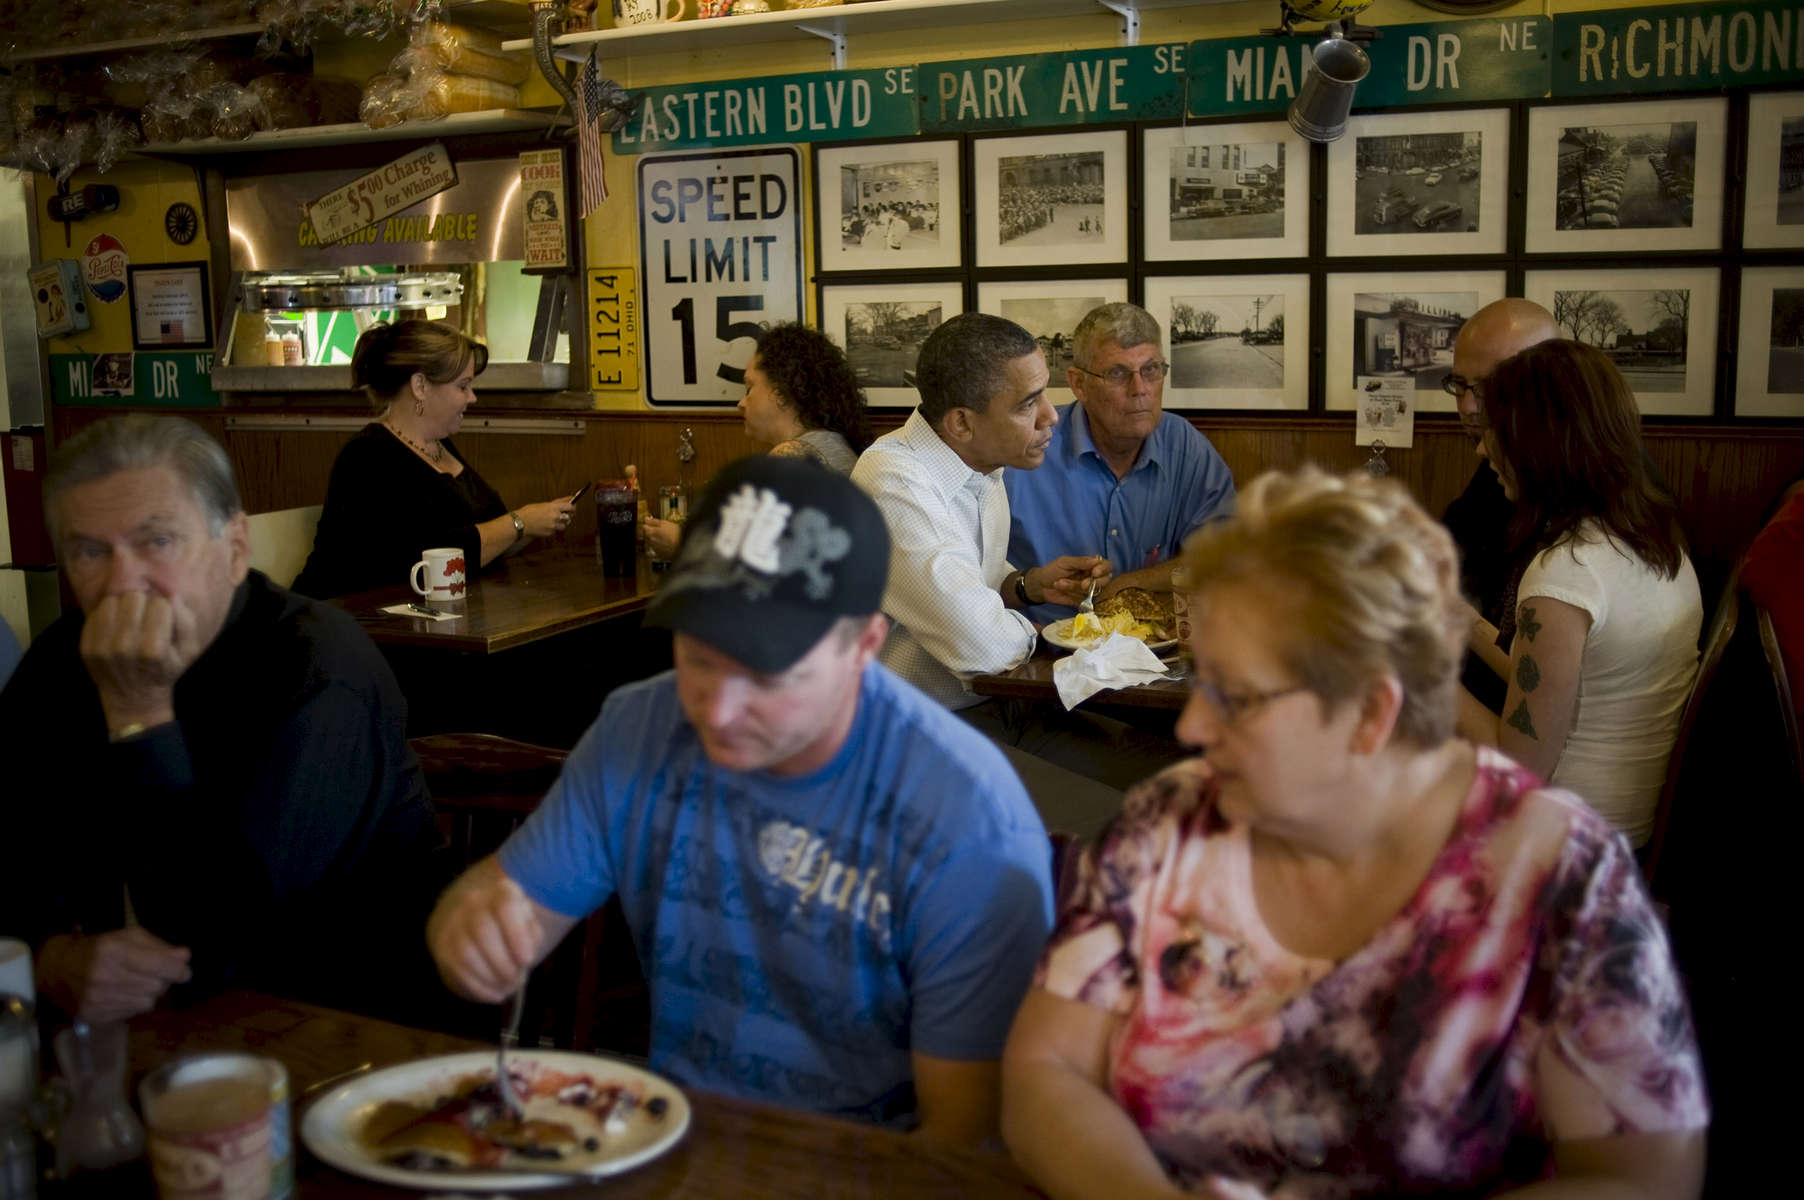 August 15, 2012- CEDAR RAPIDS, IA: Patrons of Riley's Cafe in Cedar Rapids eat as President Barack Obama shares breakfast with three US Military Veterans. (Scout Tufankjian for Obama for America/Polaris)